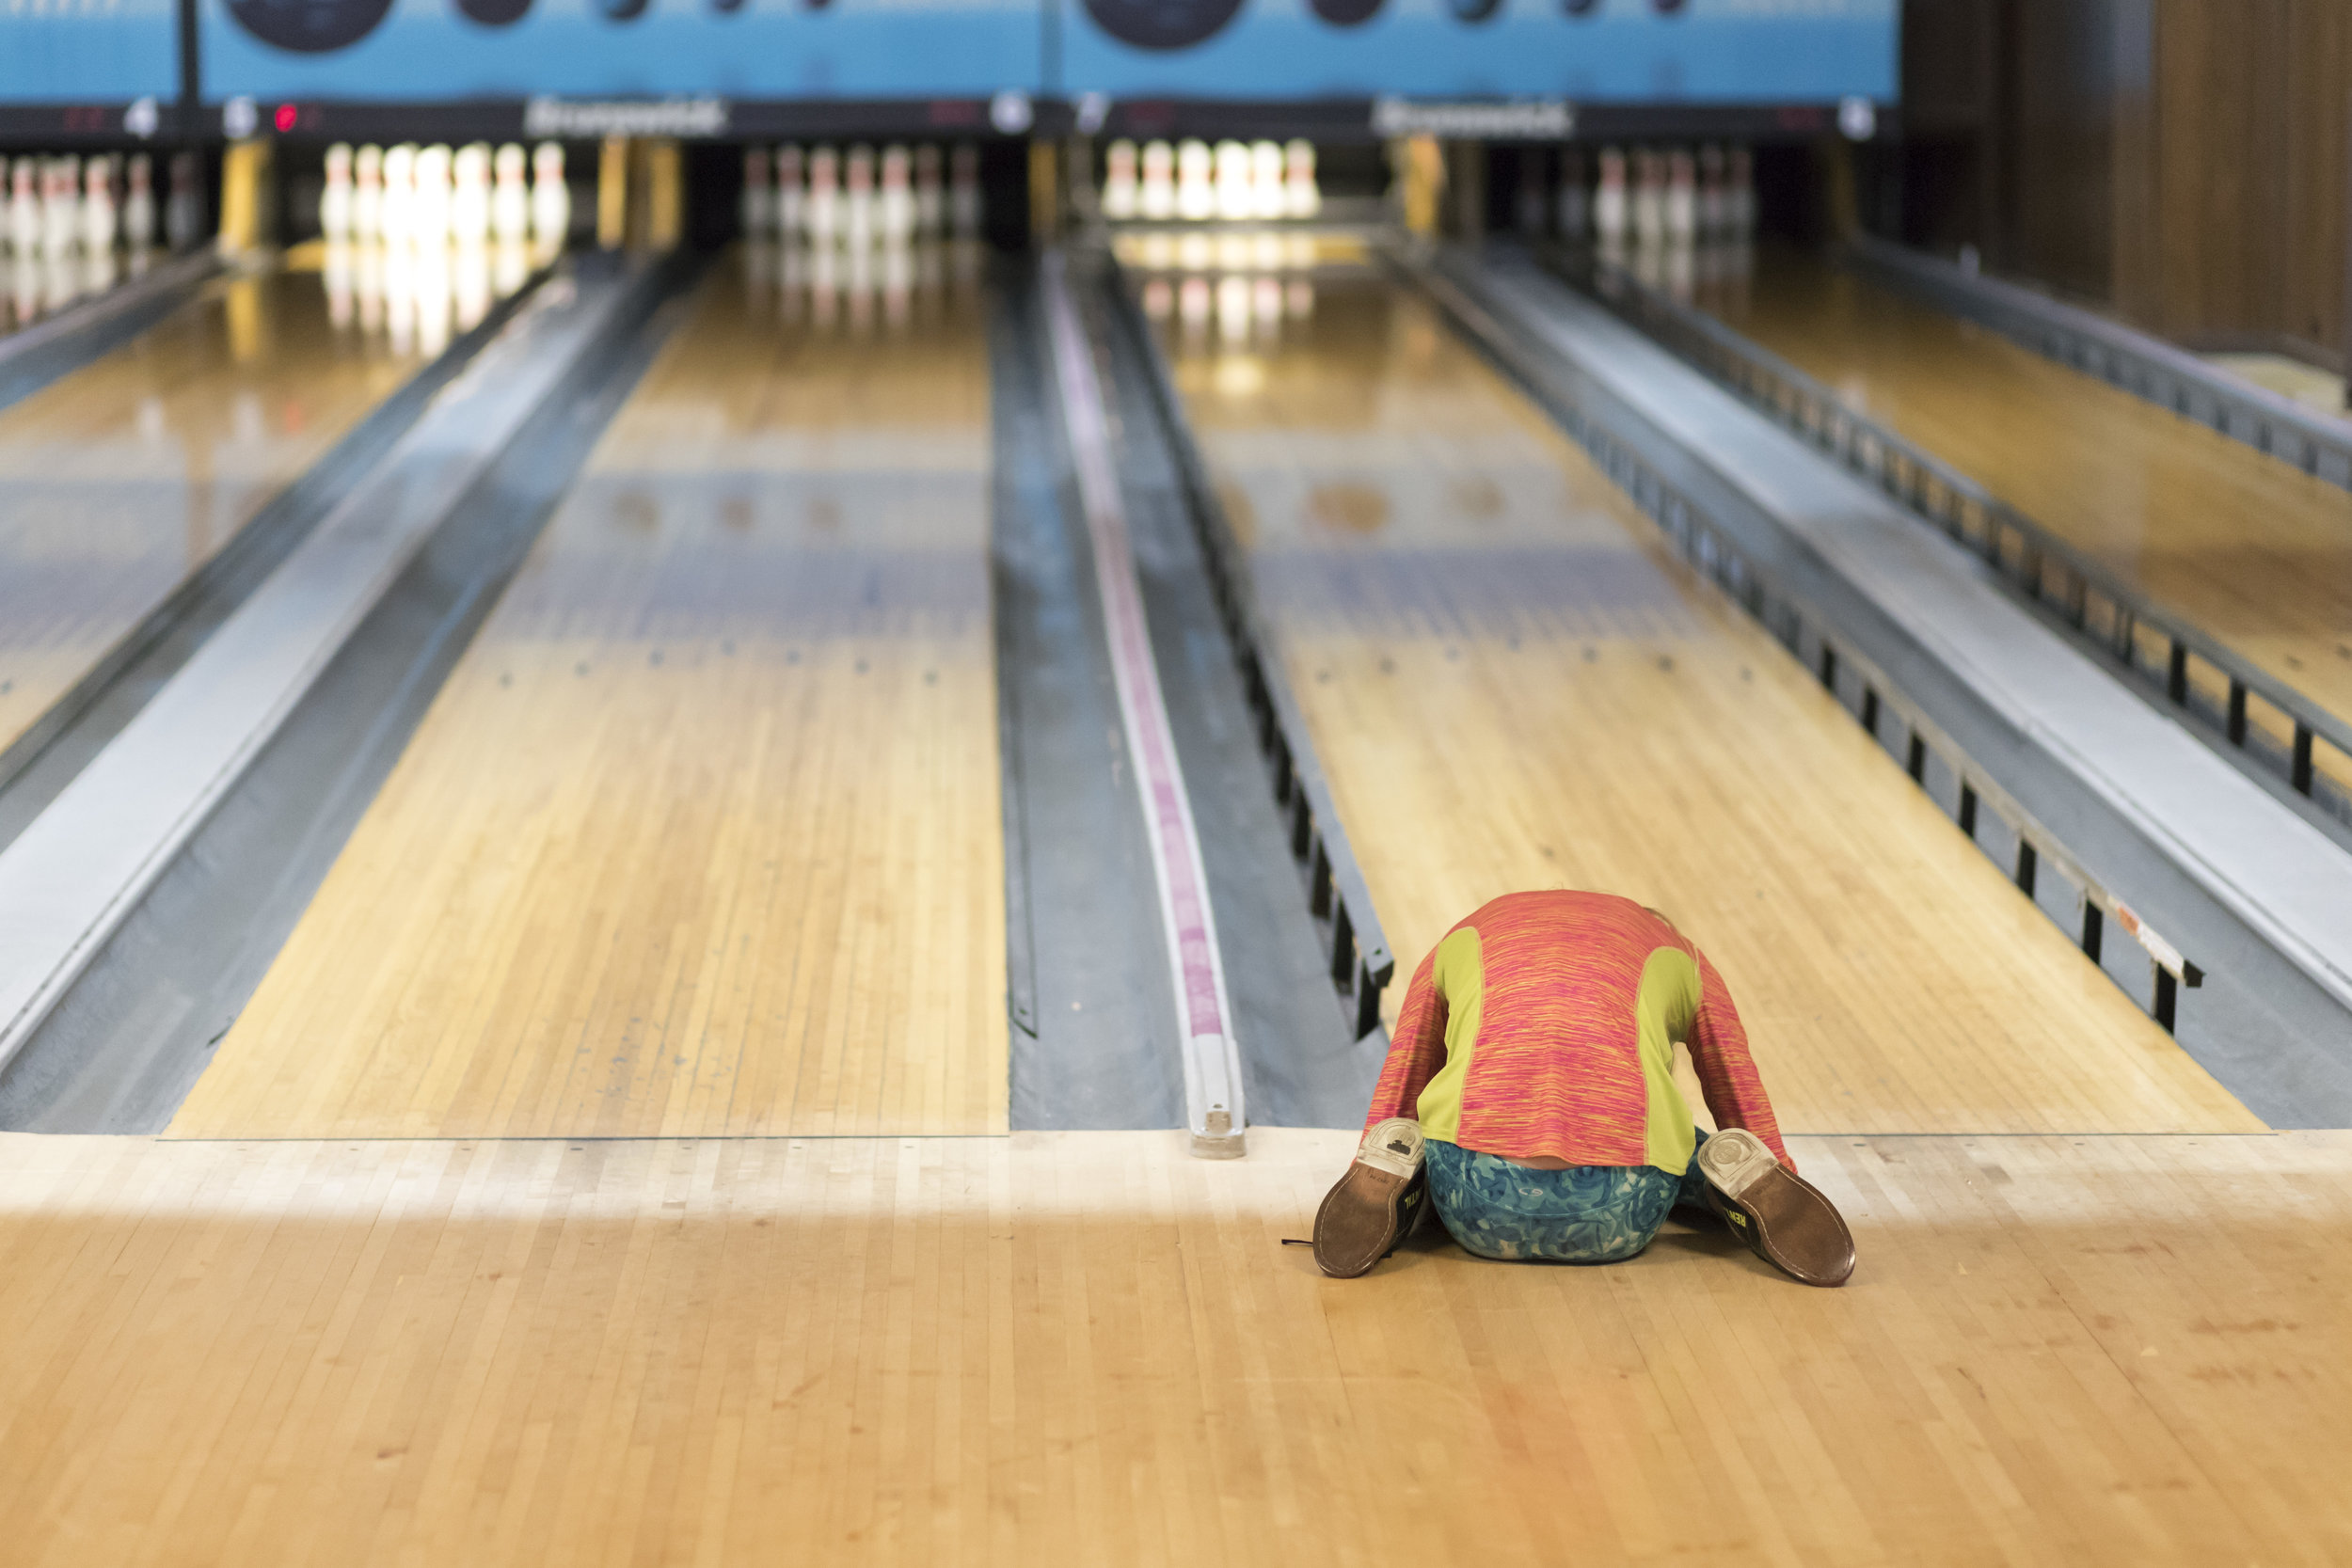 october 19, 2018  ely bowling center - ely, minnesota